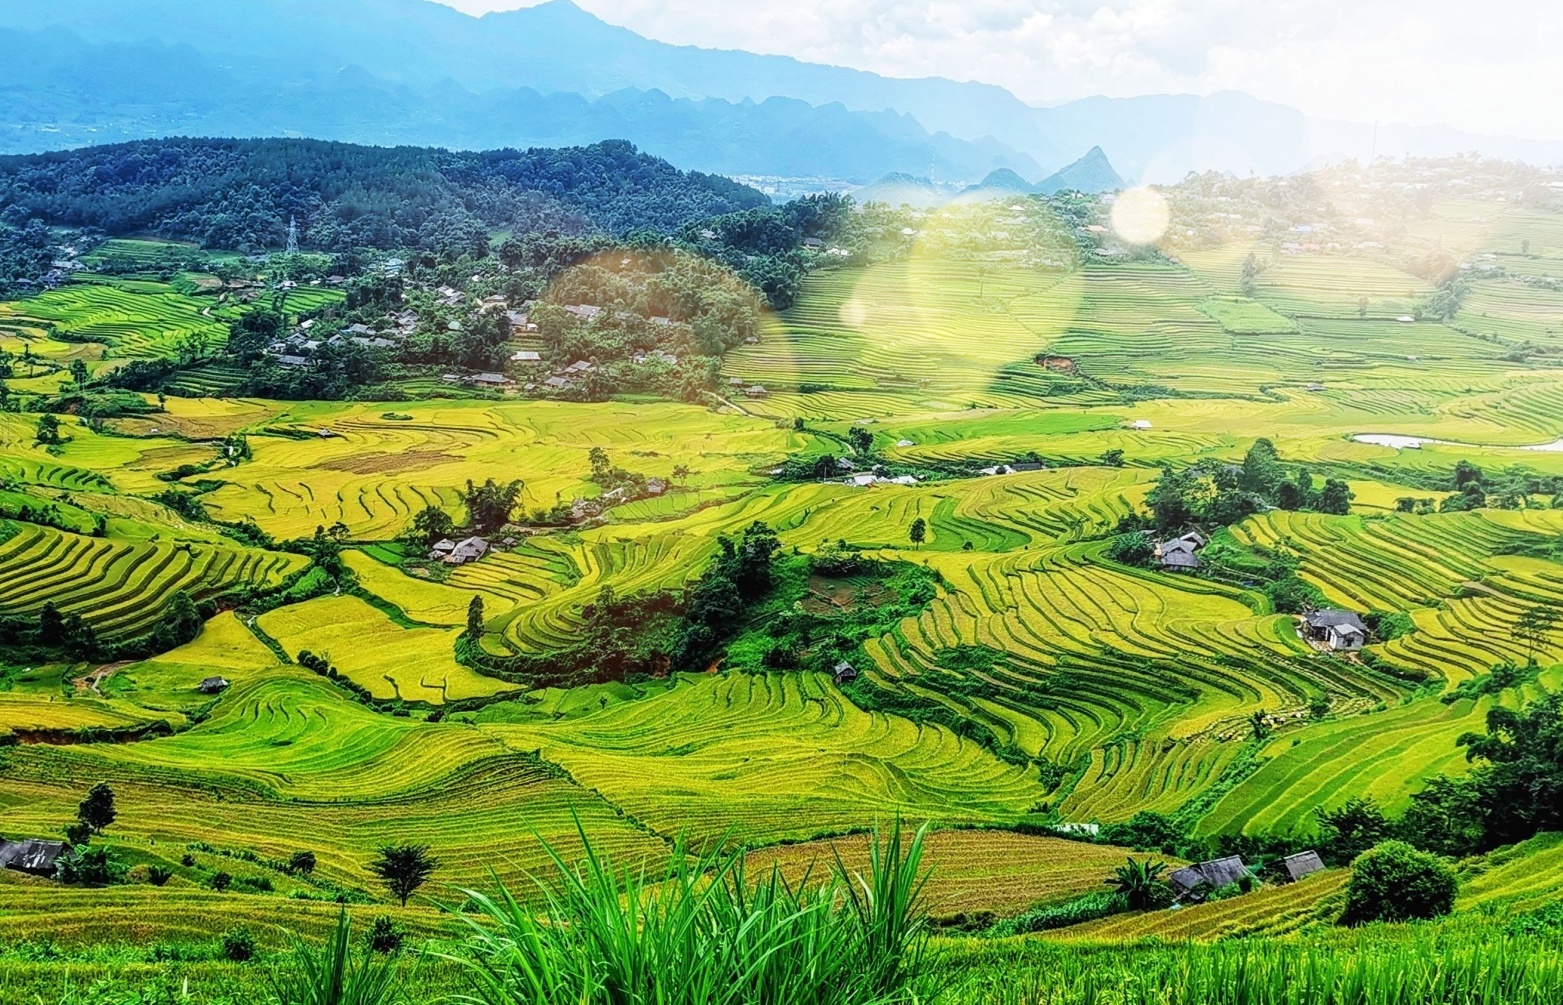 VNDIRECT predicts Vietnam's GDP growth of 3.9 per cent in 2021